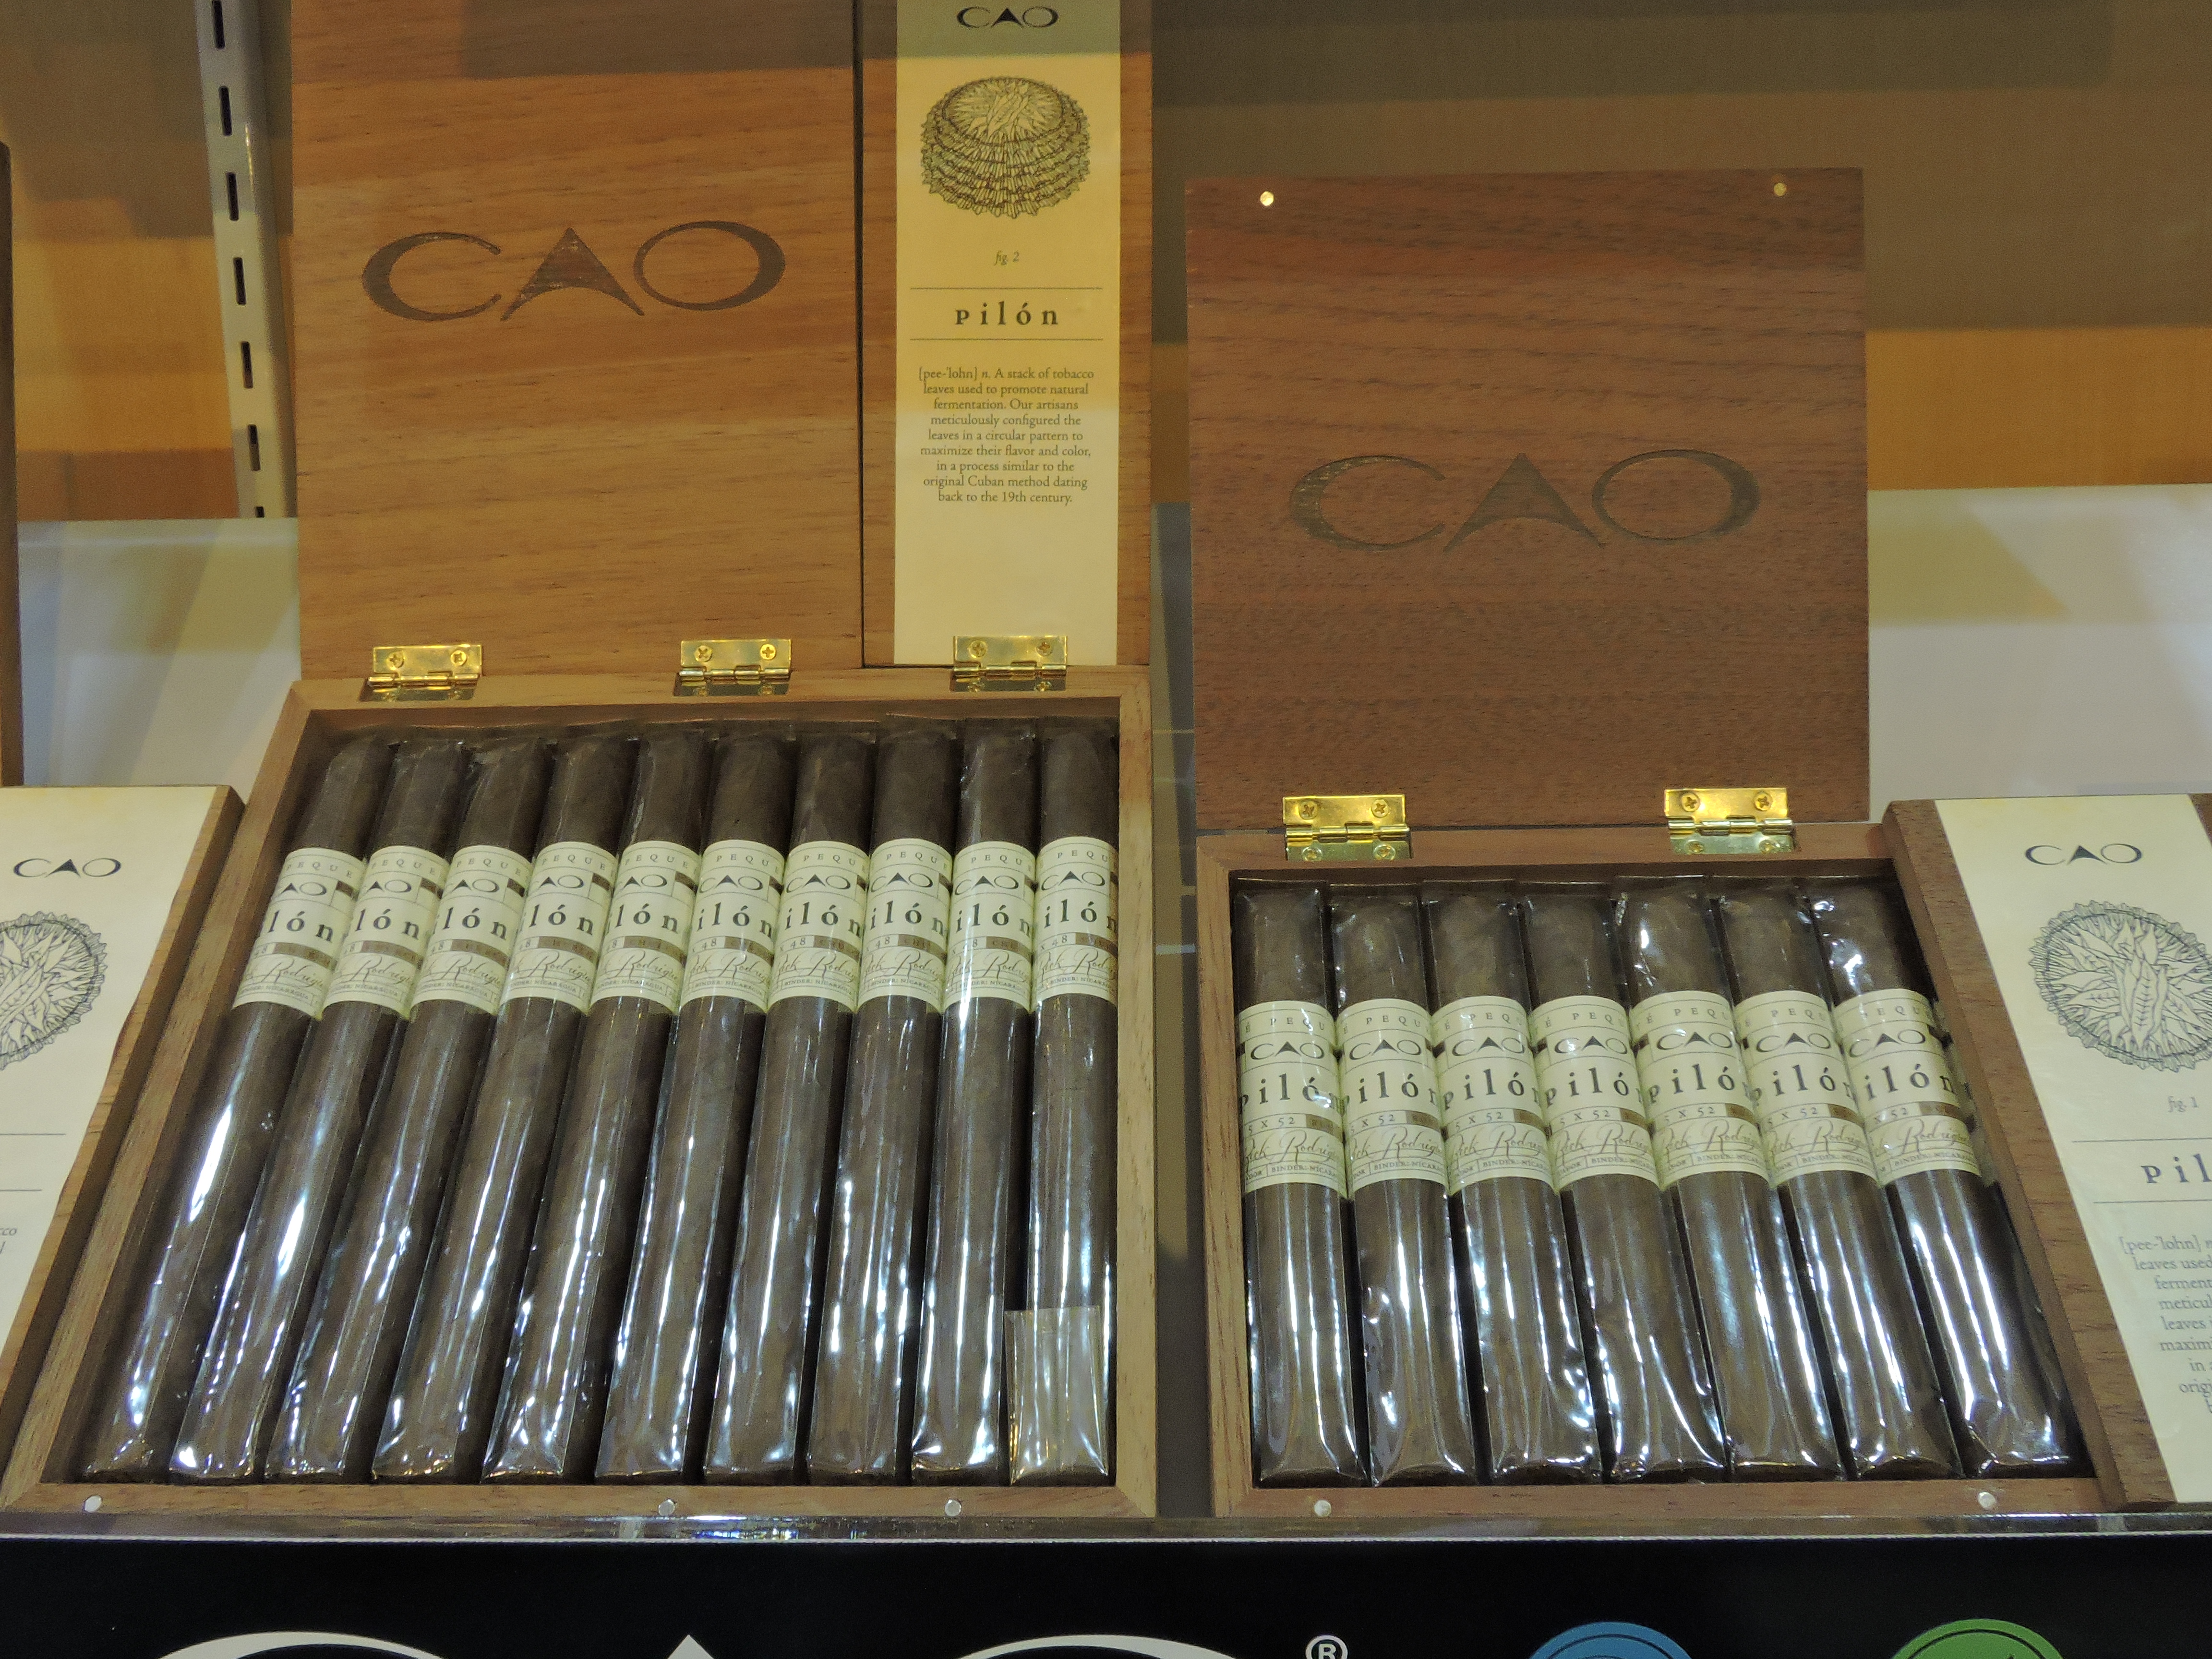 Cigar News: CAO Pilón Officially Launched at 2015 IPCPR